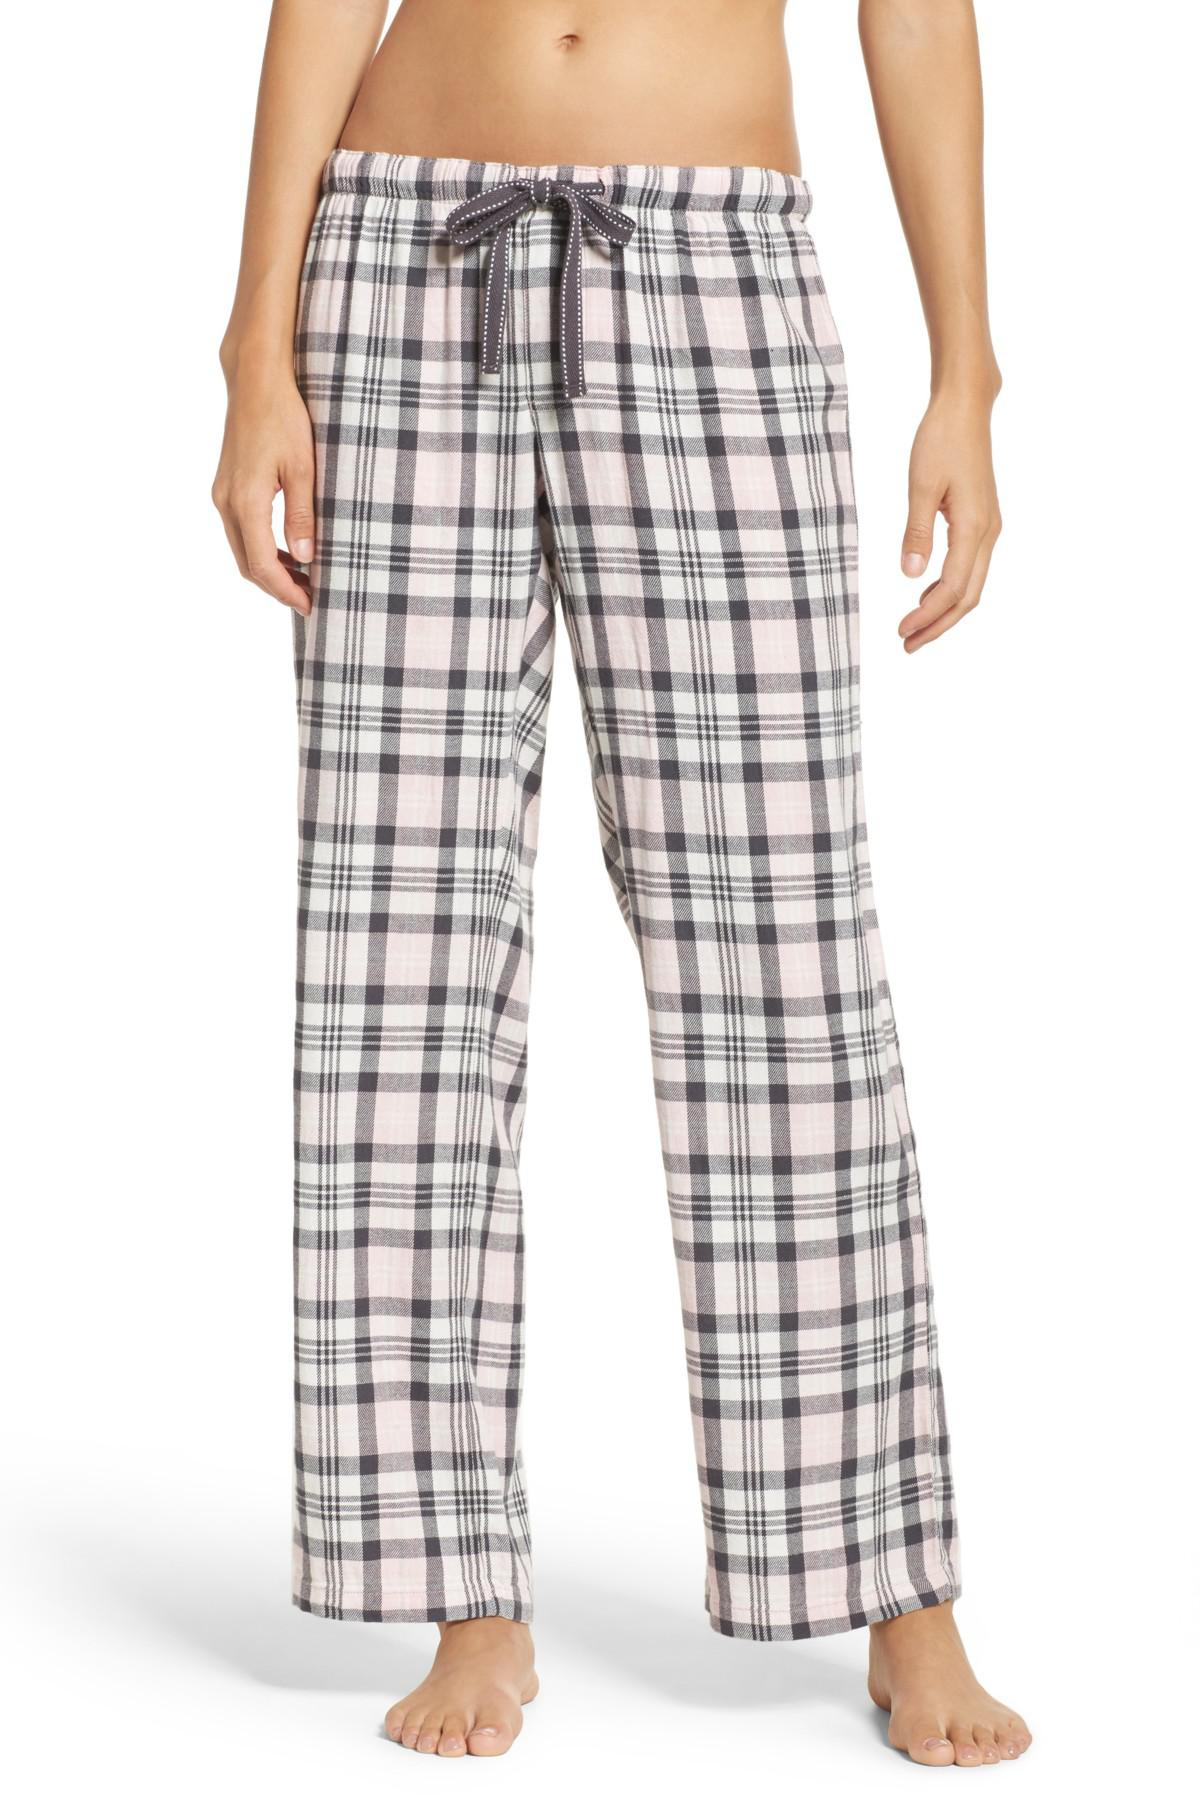 bece99e84e9 Lyst - Pj Salvage Plaid Pajama Pants in Pink